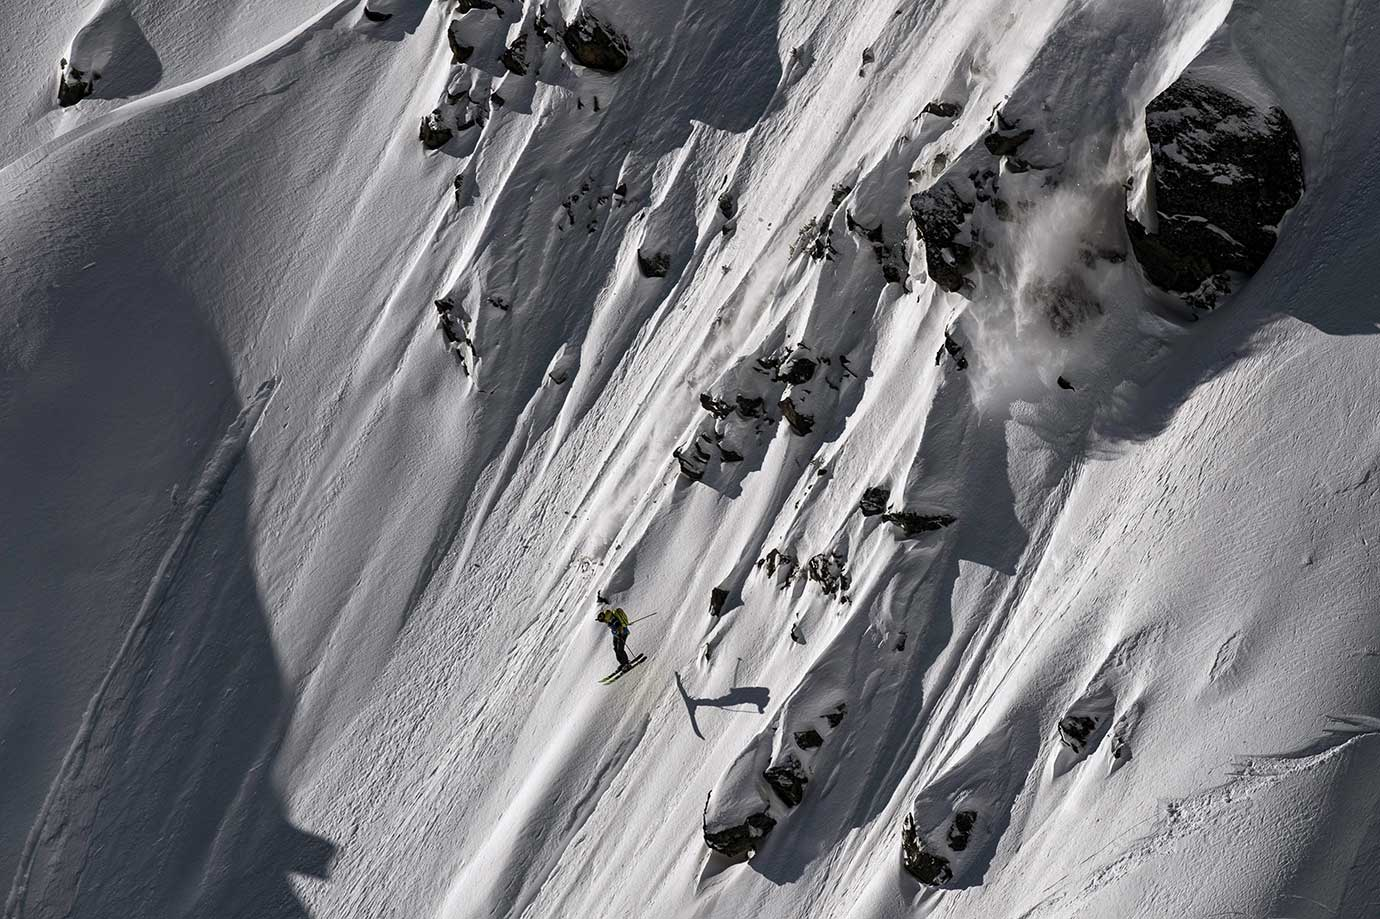 Martin Lentz skis down the wild face of Aiguille Pourrie during a stage of the Swatch Freeride World Touin Chamonix, France.